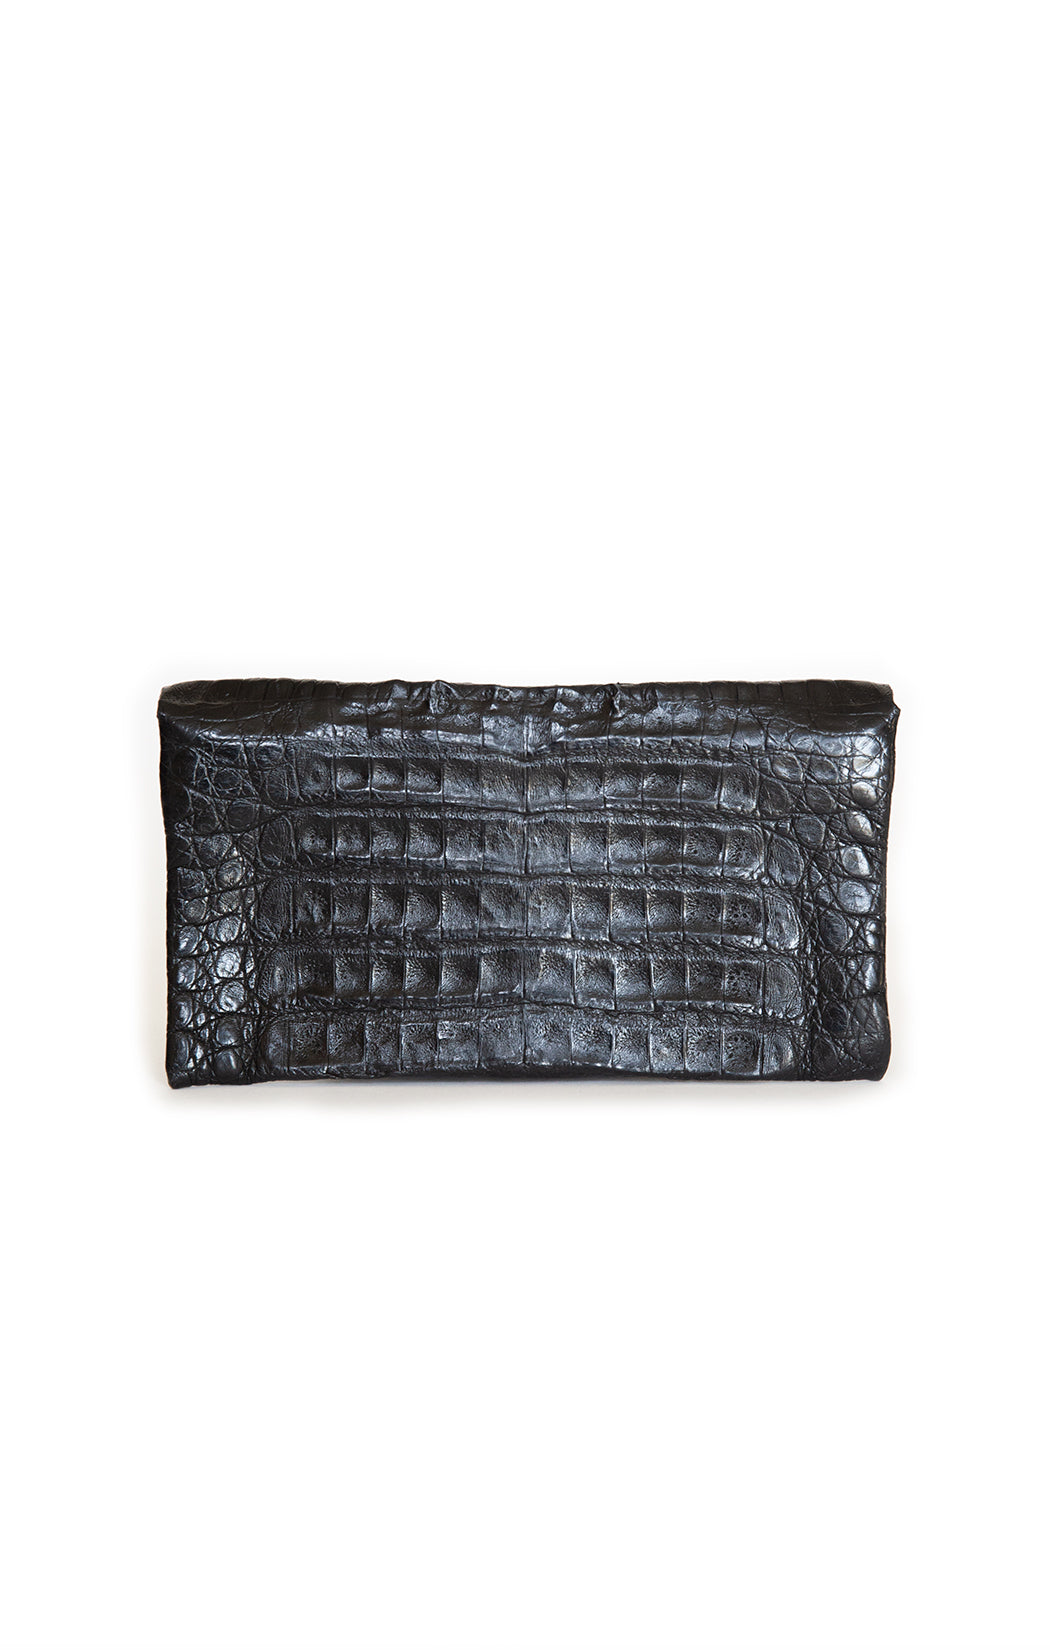 "Back view of ADRIANA CASTRO Clutch Size: 8.75"" x 4.75"" x .5"""